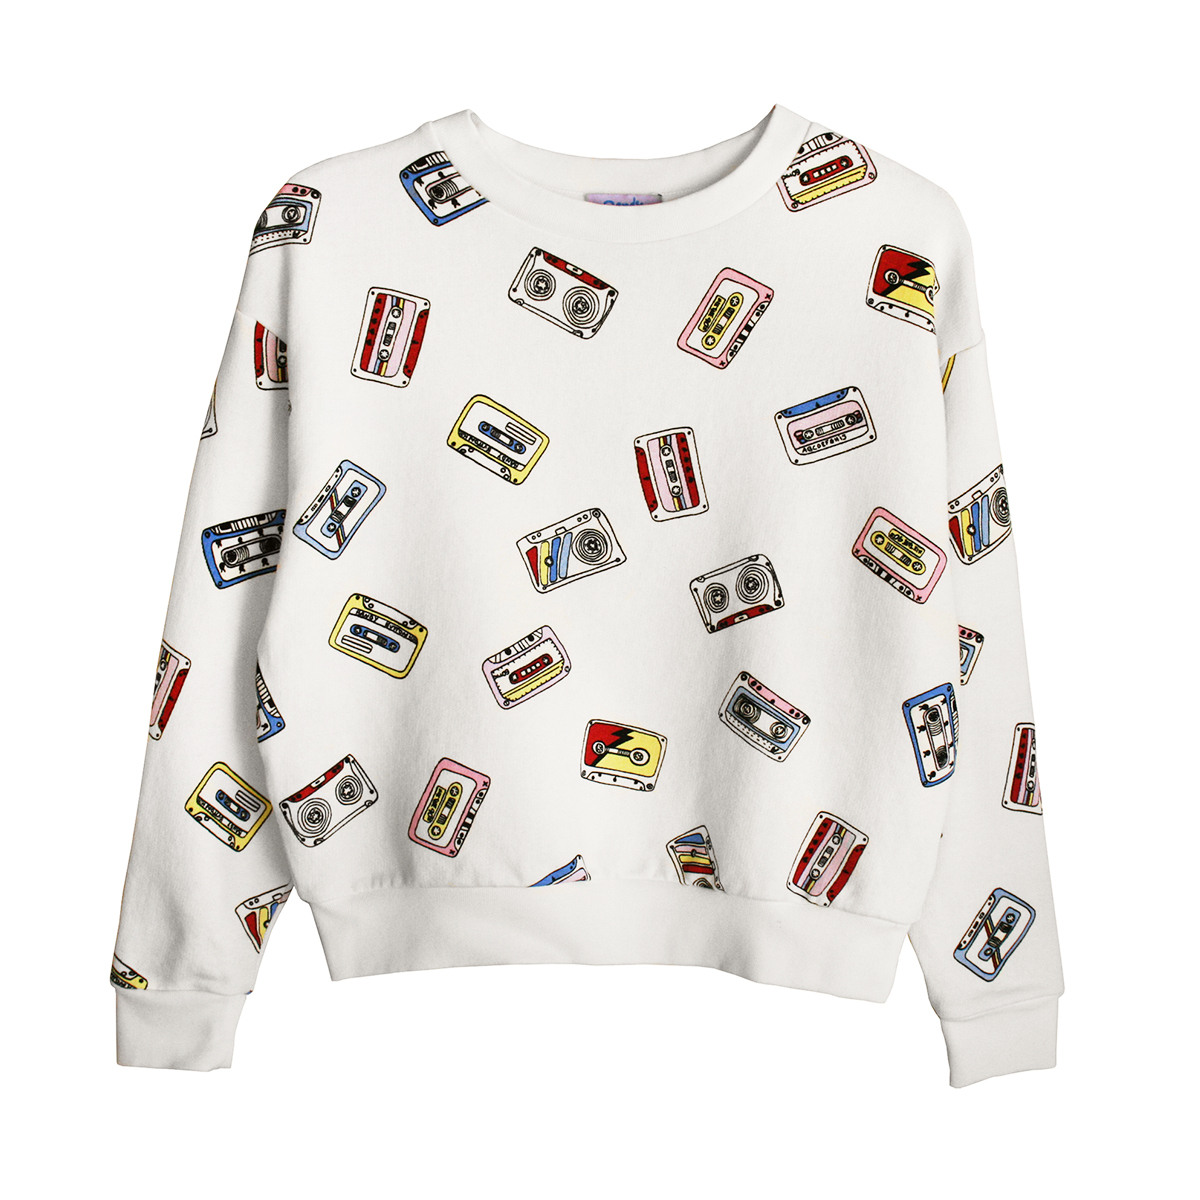 Bandy Button K7 Sweatshirt in White with Multi Colored Cassette Tapes